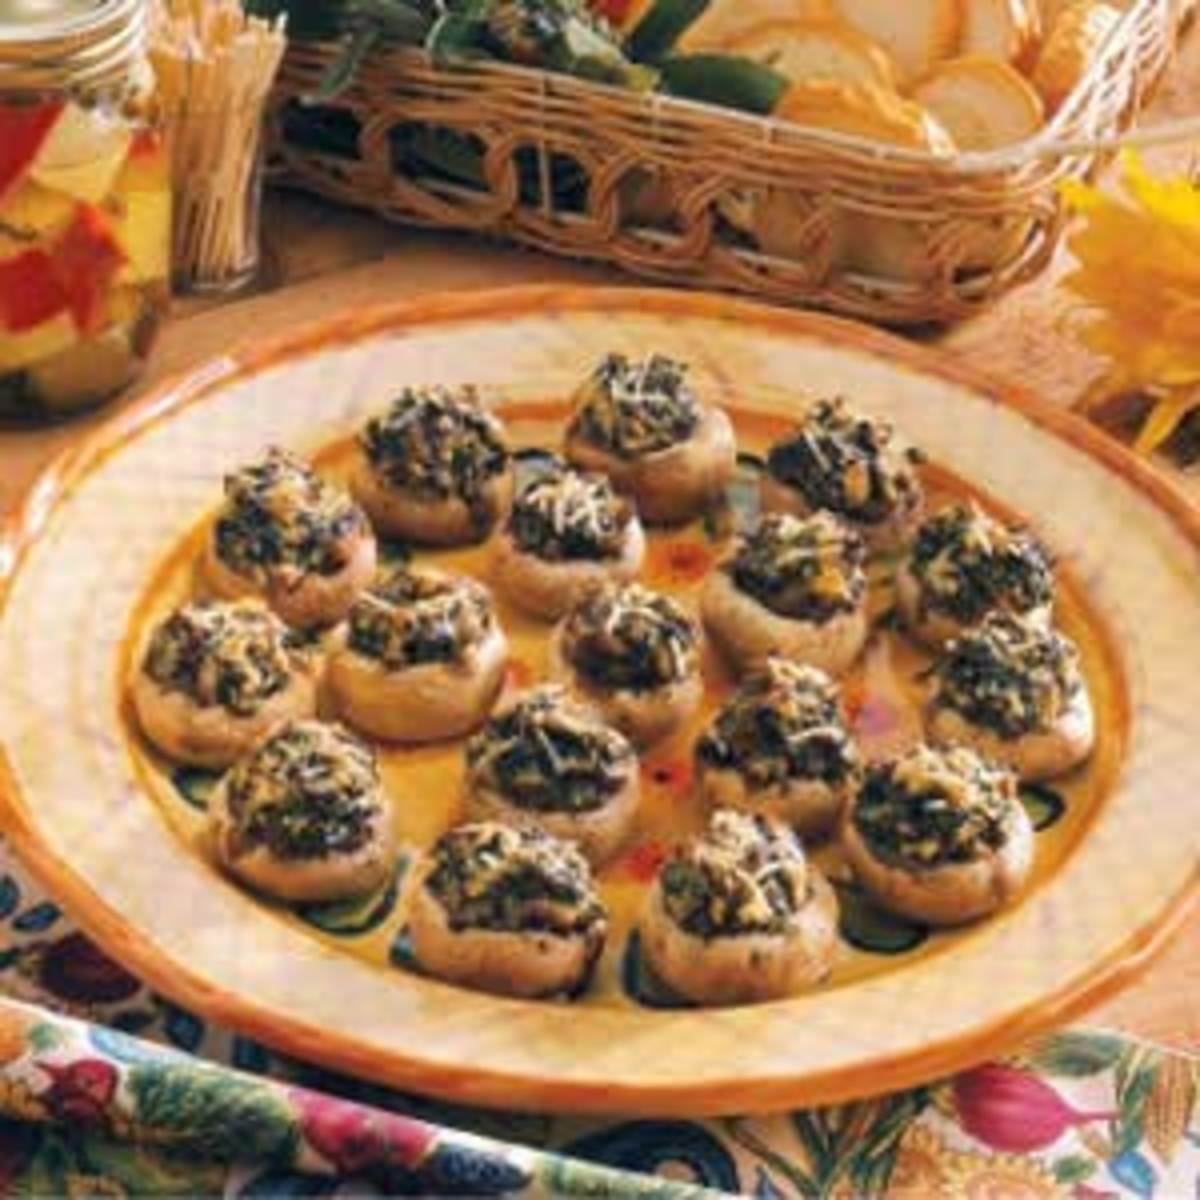 Spinach with cheese mushrooms